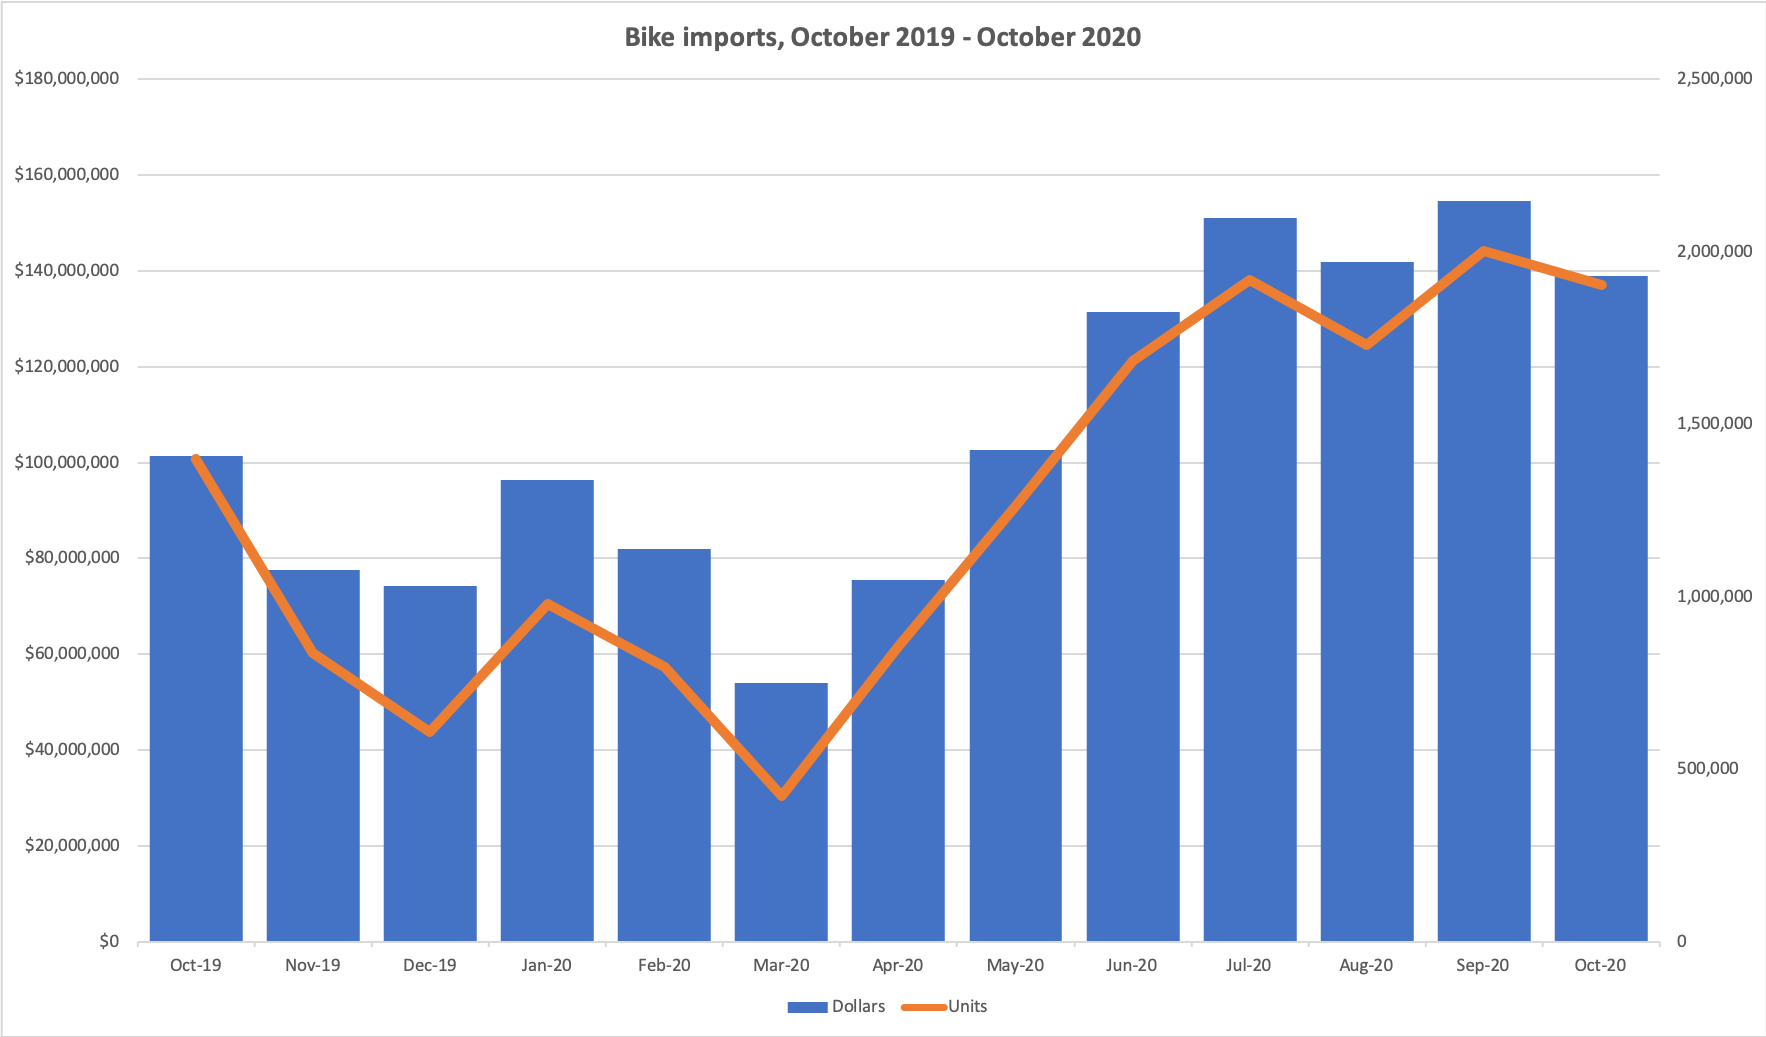 Bike imports, dollars and units. Source: US Department of Commerce.